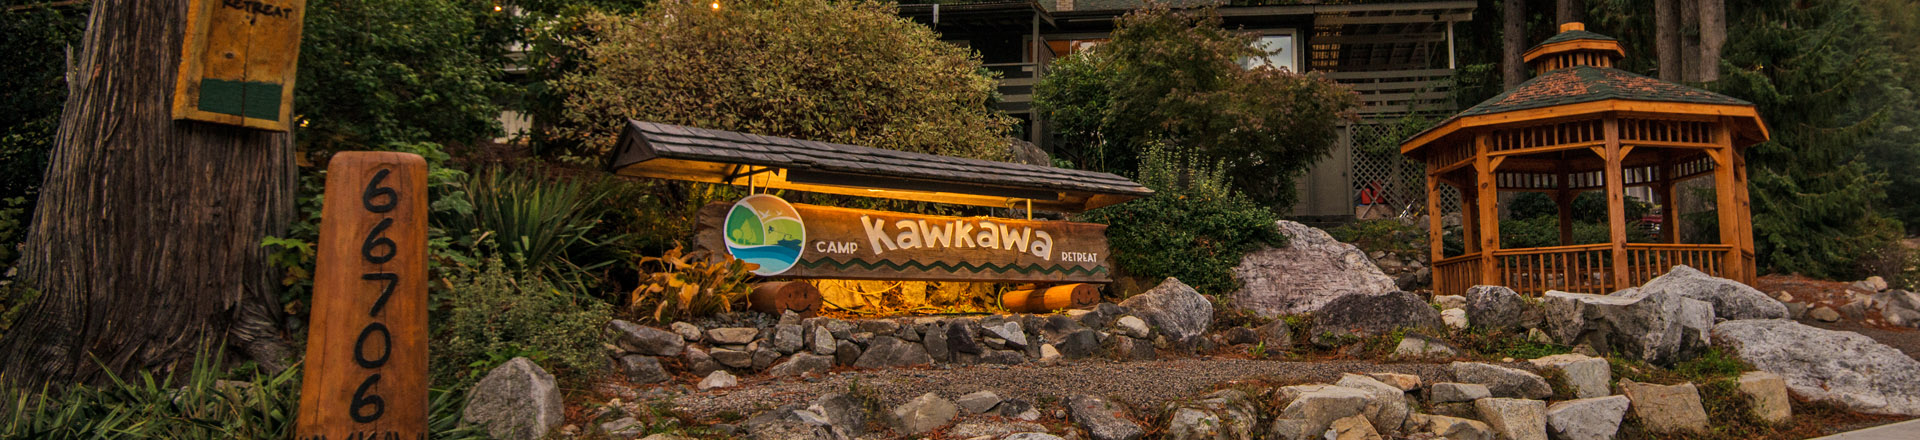 Kawkawa Camp and Retreat, Hope BC - PeterSoPhotography